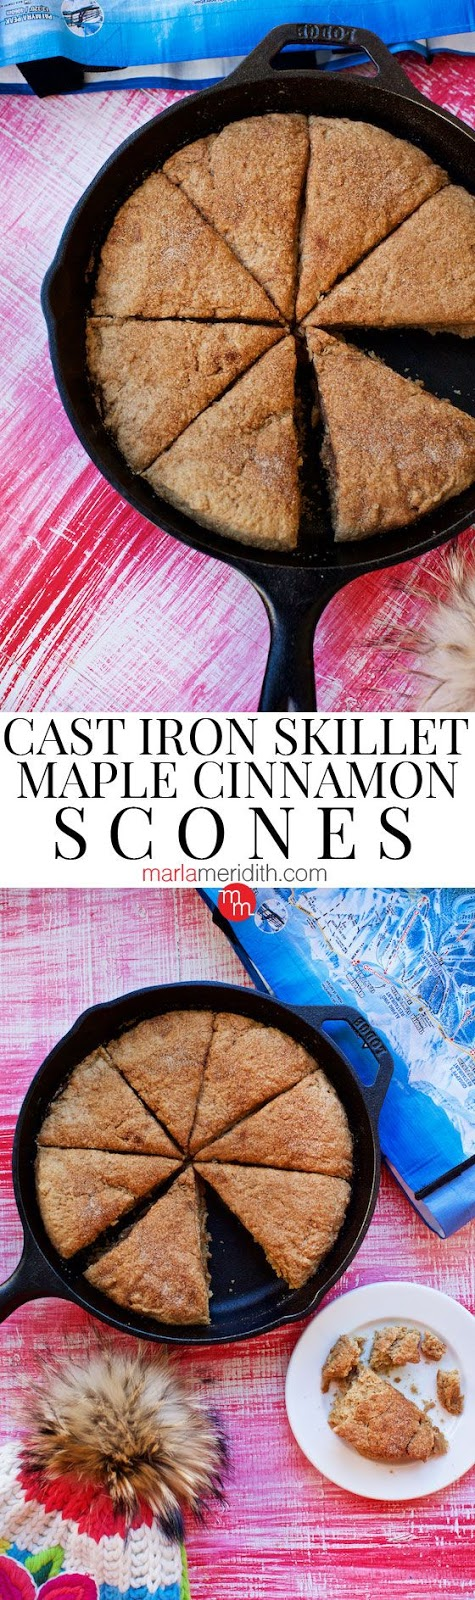 CAST IRON SKILLET MAPLE CINNAMON SCONES